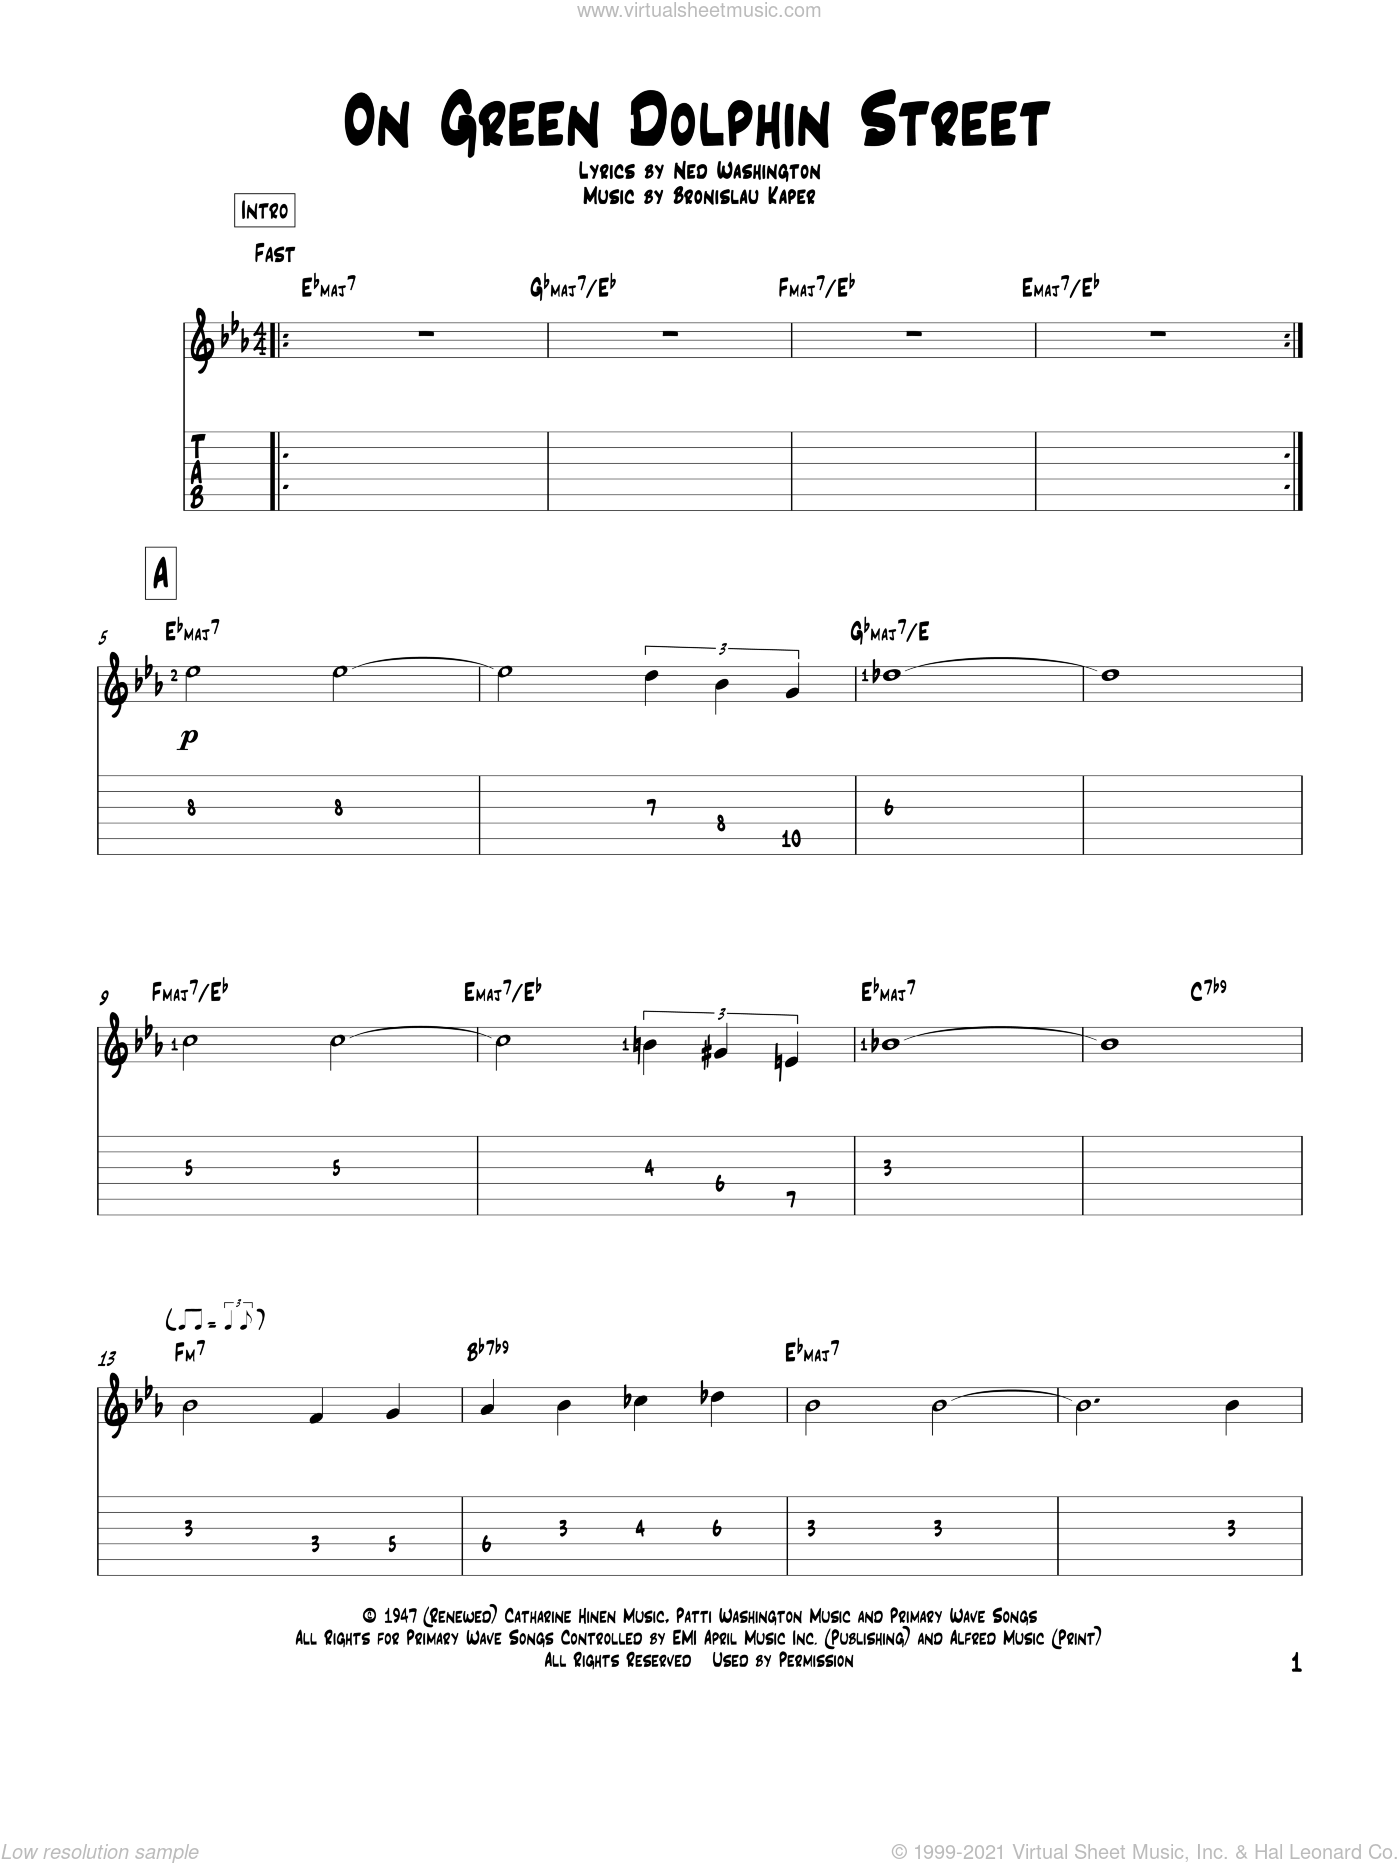 On Green Dolphin Street sheet music for guitar solo by Ned Washington, Miles Davis and Bronislau Kaper. Score Image Preview.